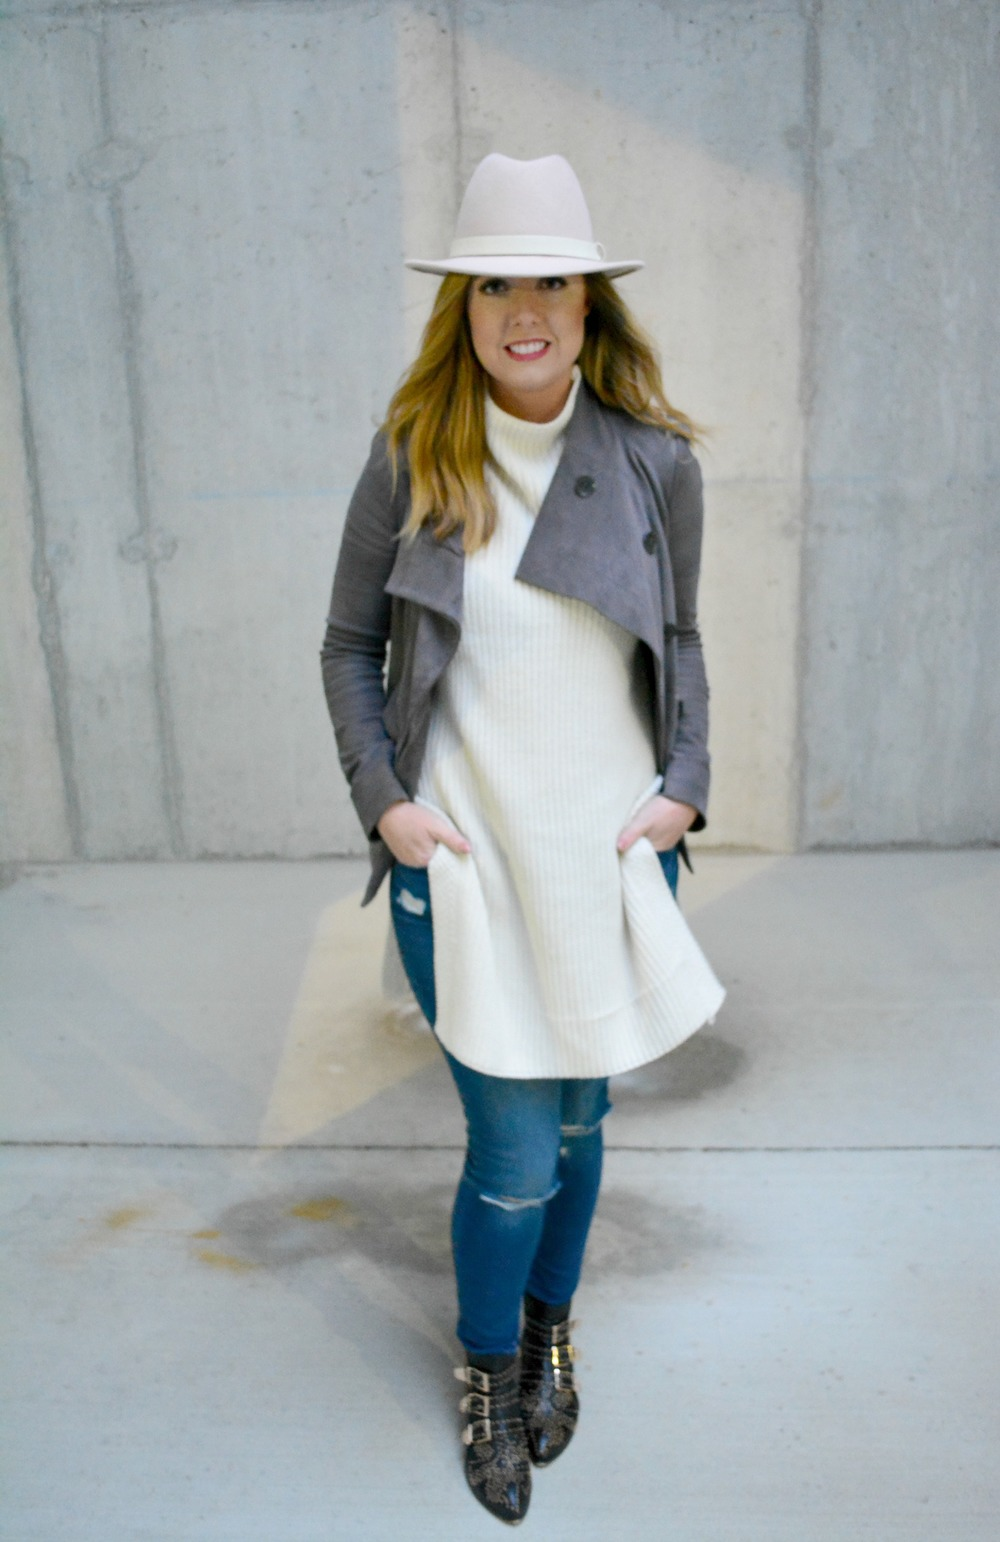 Soft colors for a fun winter outfit